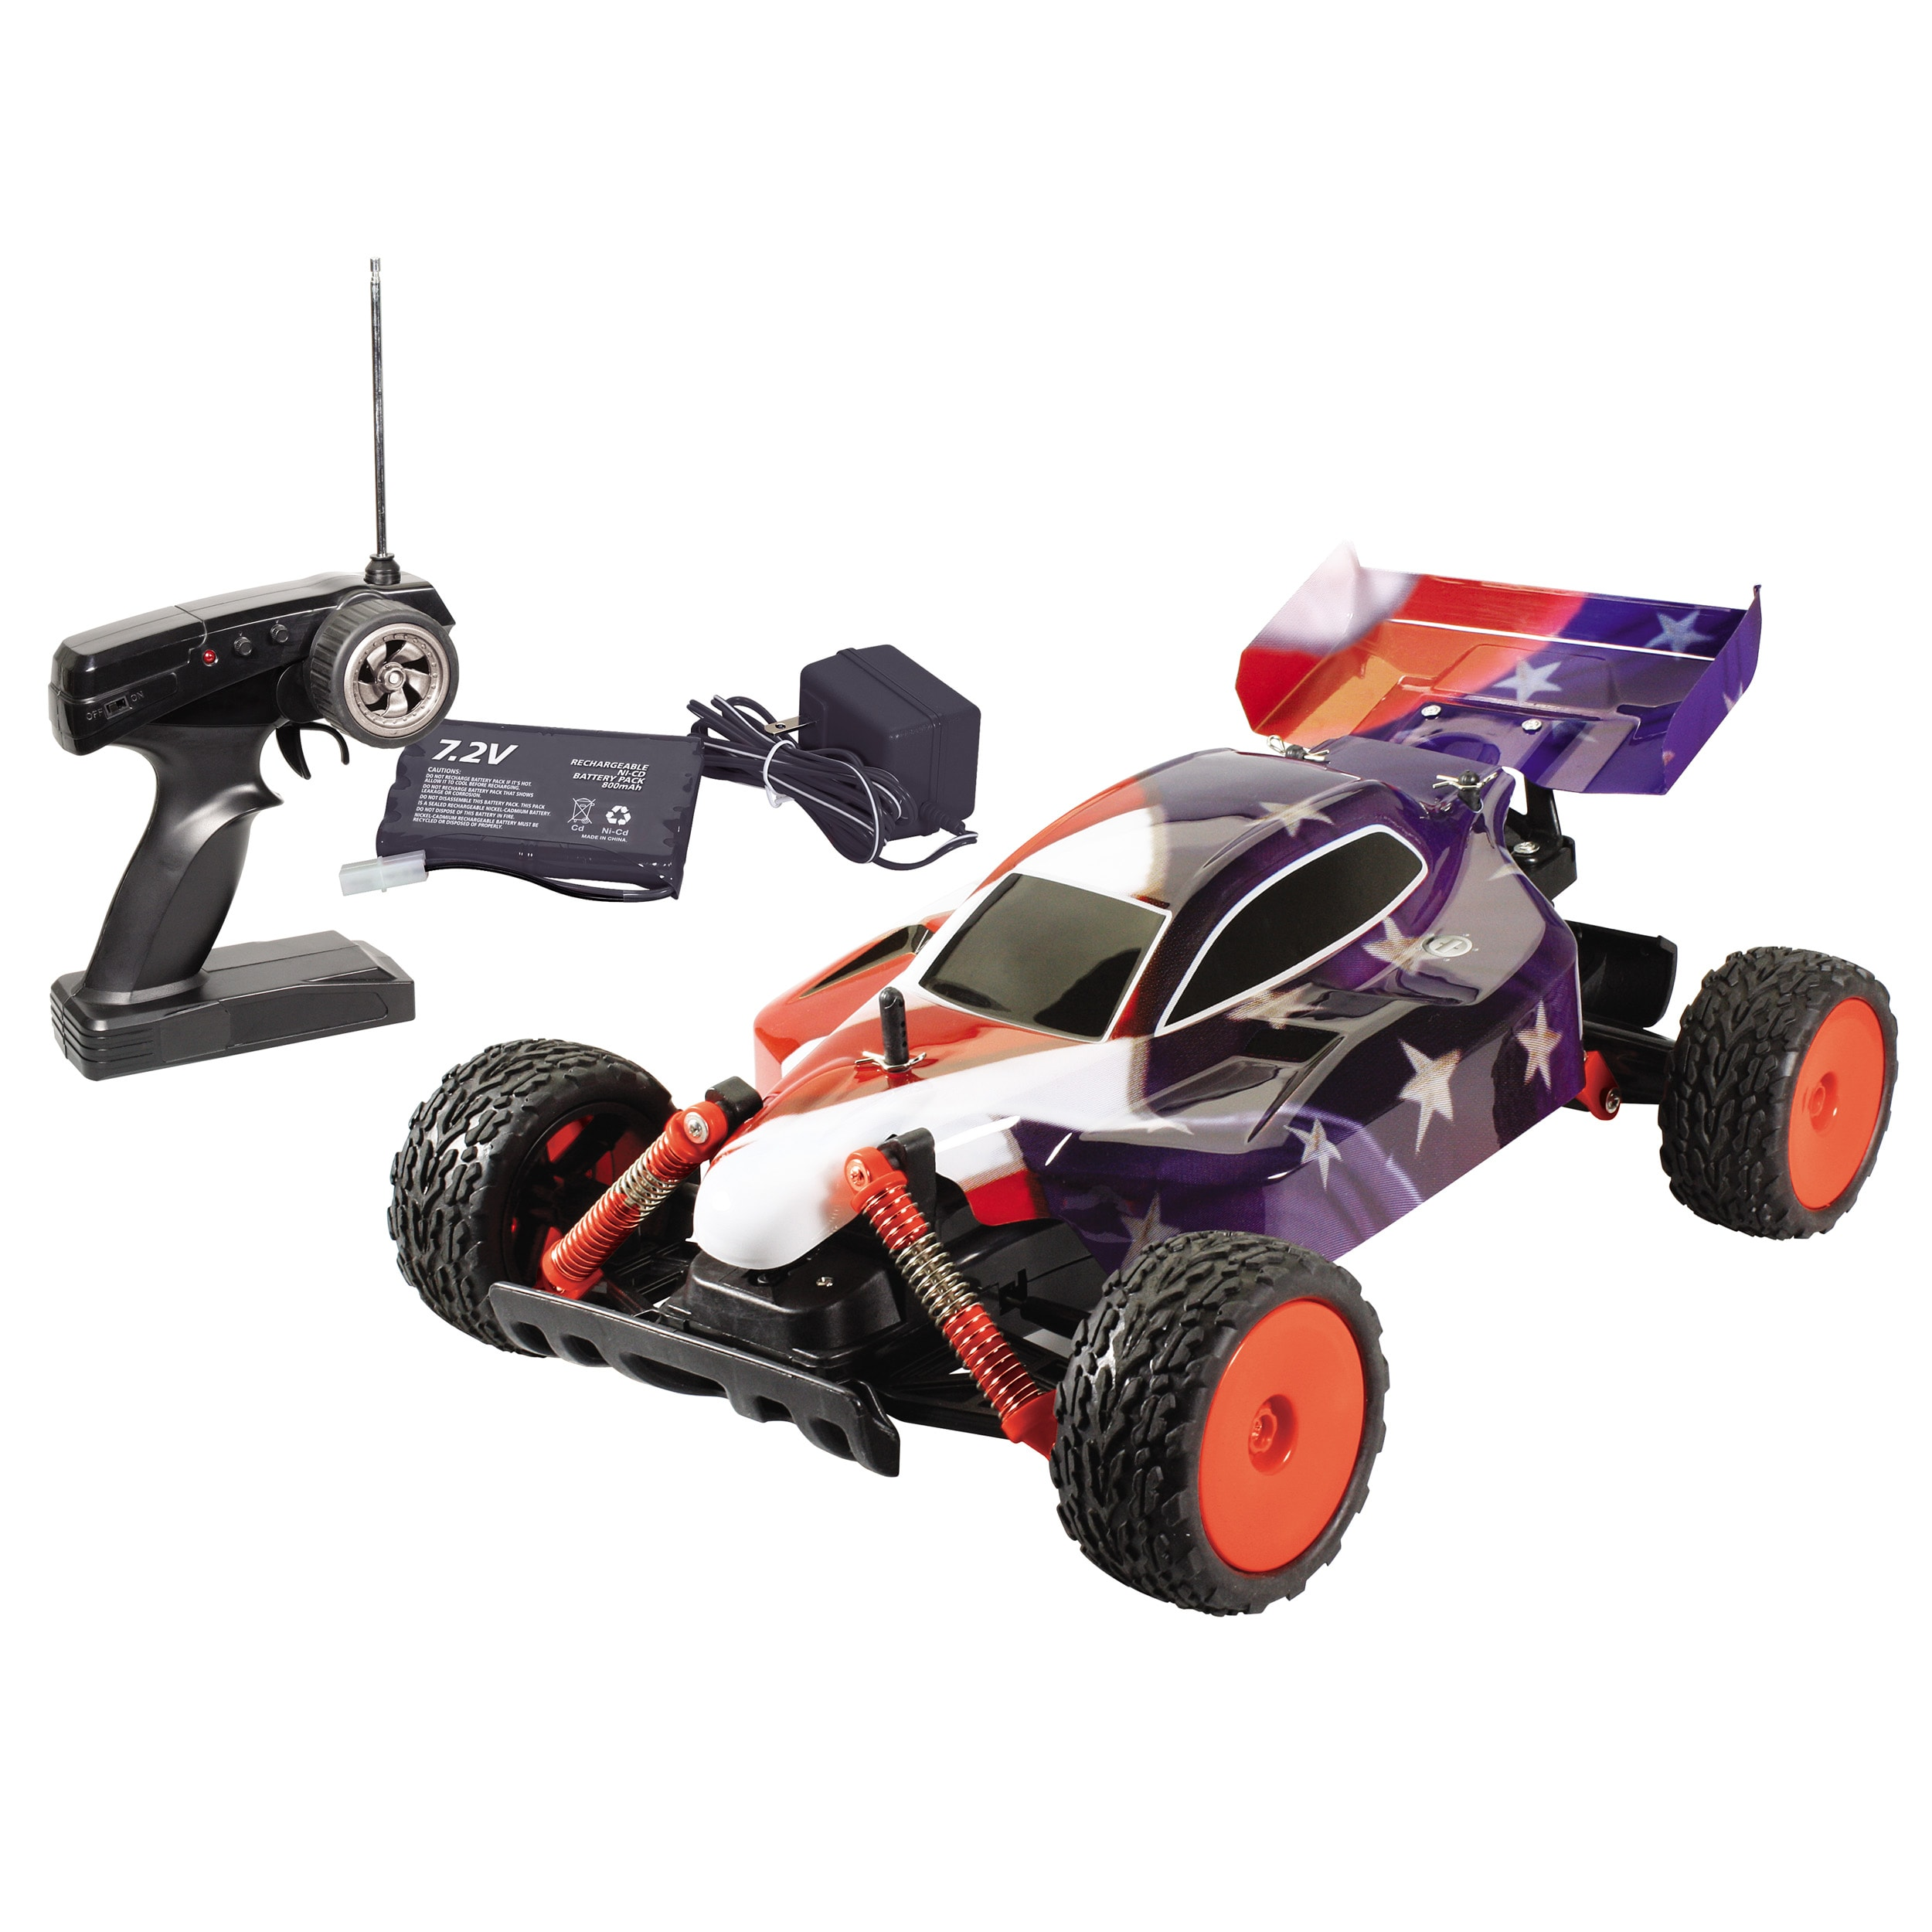 World of Wheels 'Stars and Stripes' RC Baja Racer